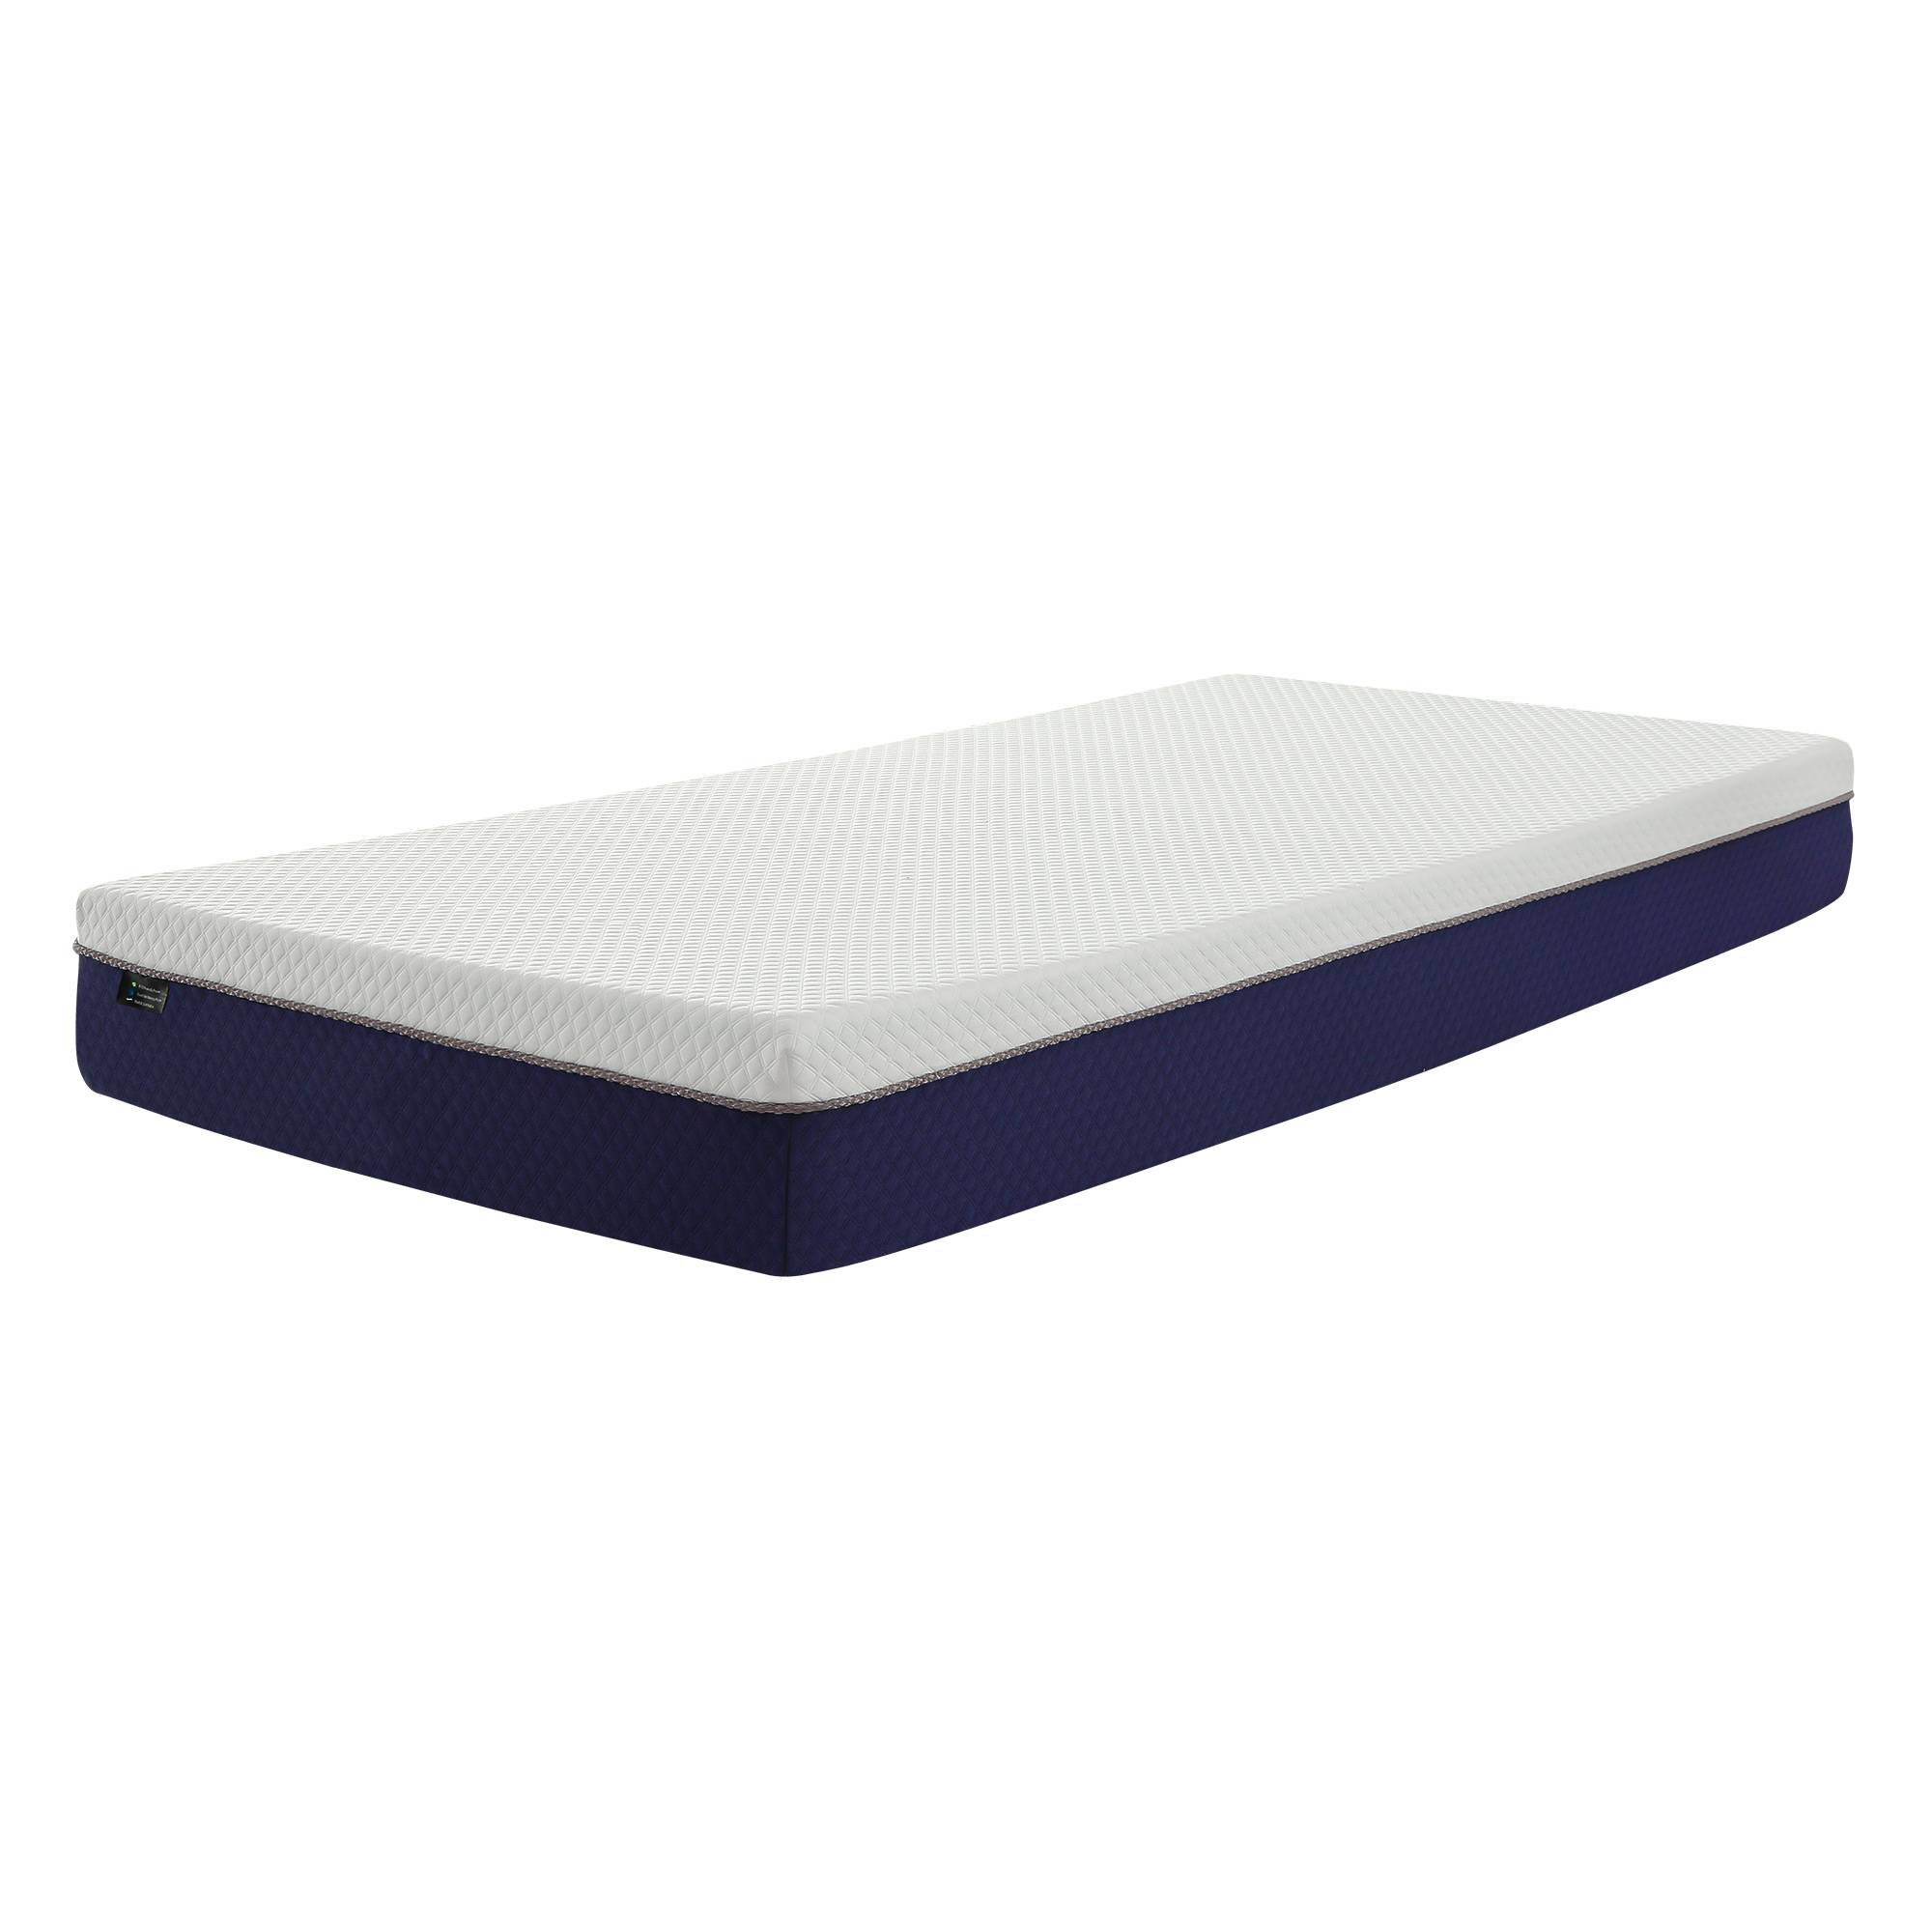 10″ Confort Memory Foam Mattress